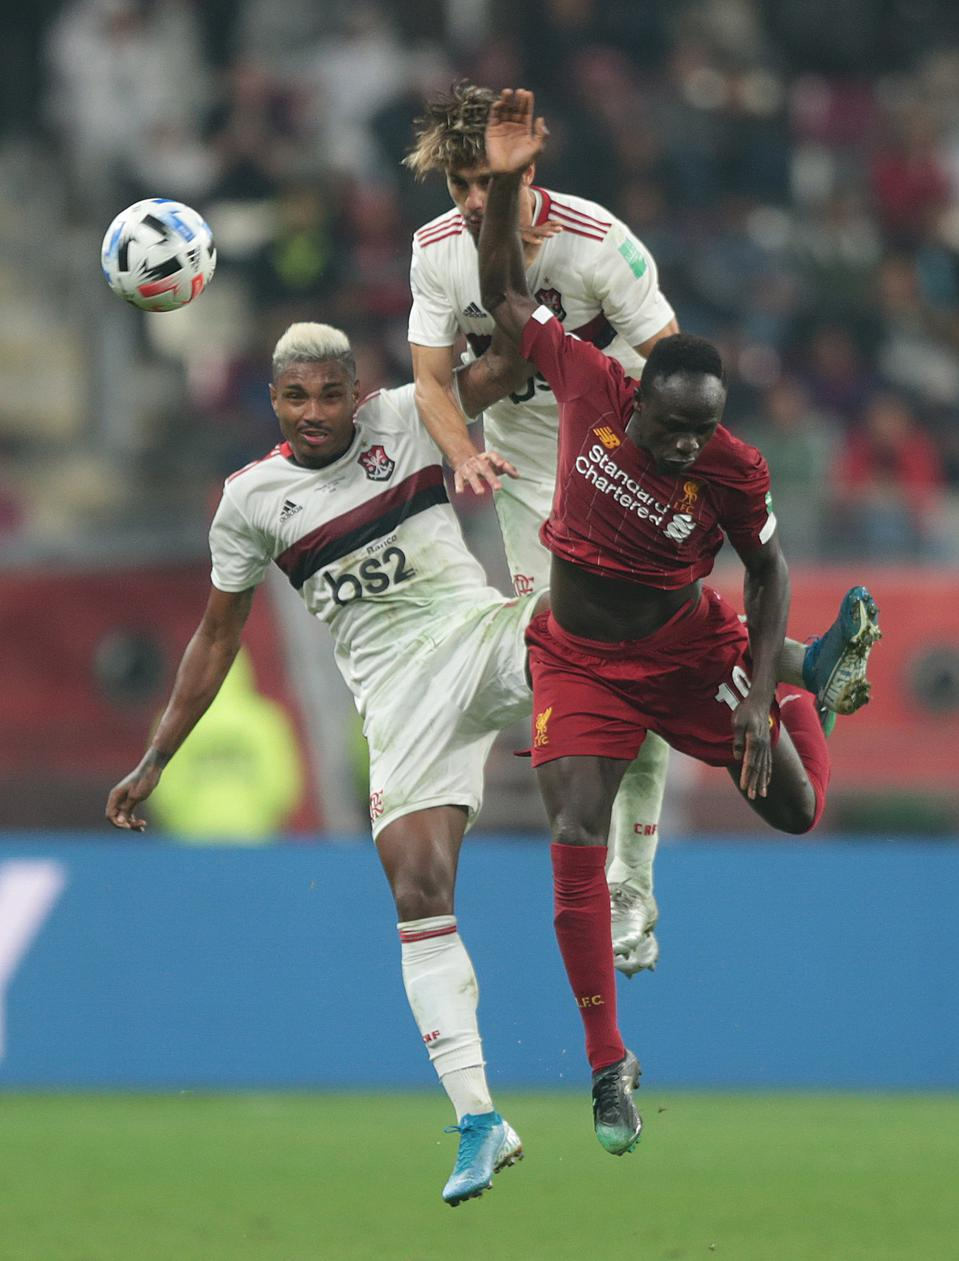 Liverpool FC vs CR Flamengo - FIFA Club World Cup Qatar 2019